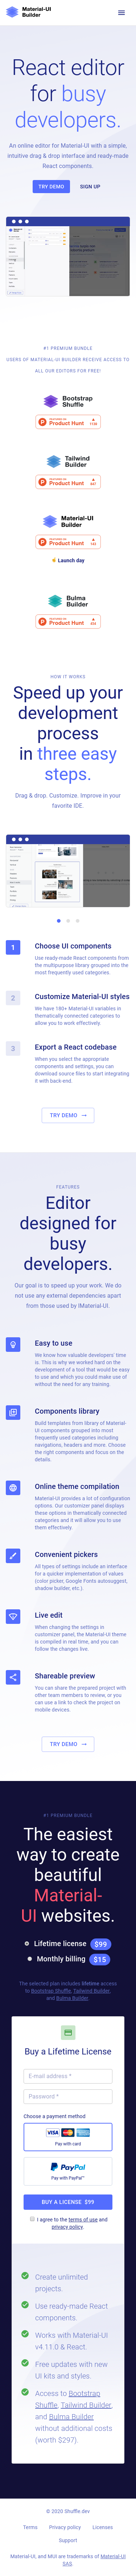 Example of Design for Computers & Electronics, Software, Mobile Landing Page by mui.dev | Mobile Landing Page Design